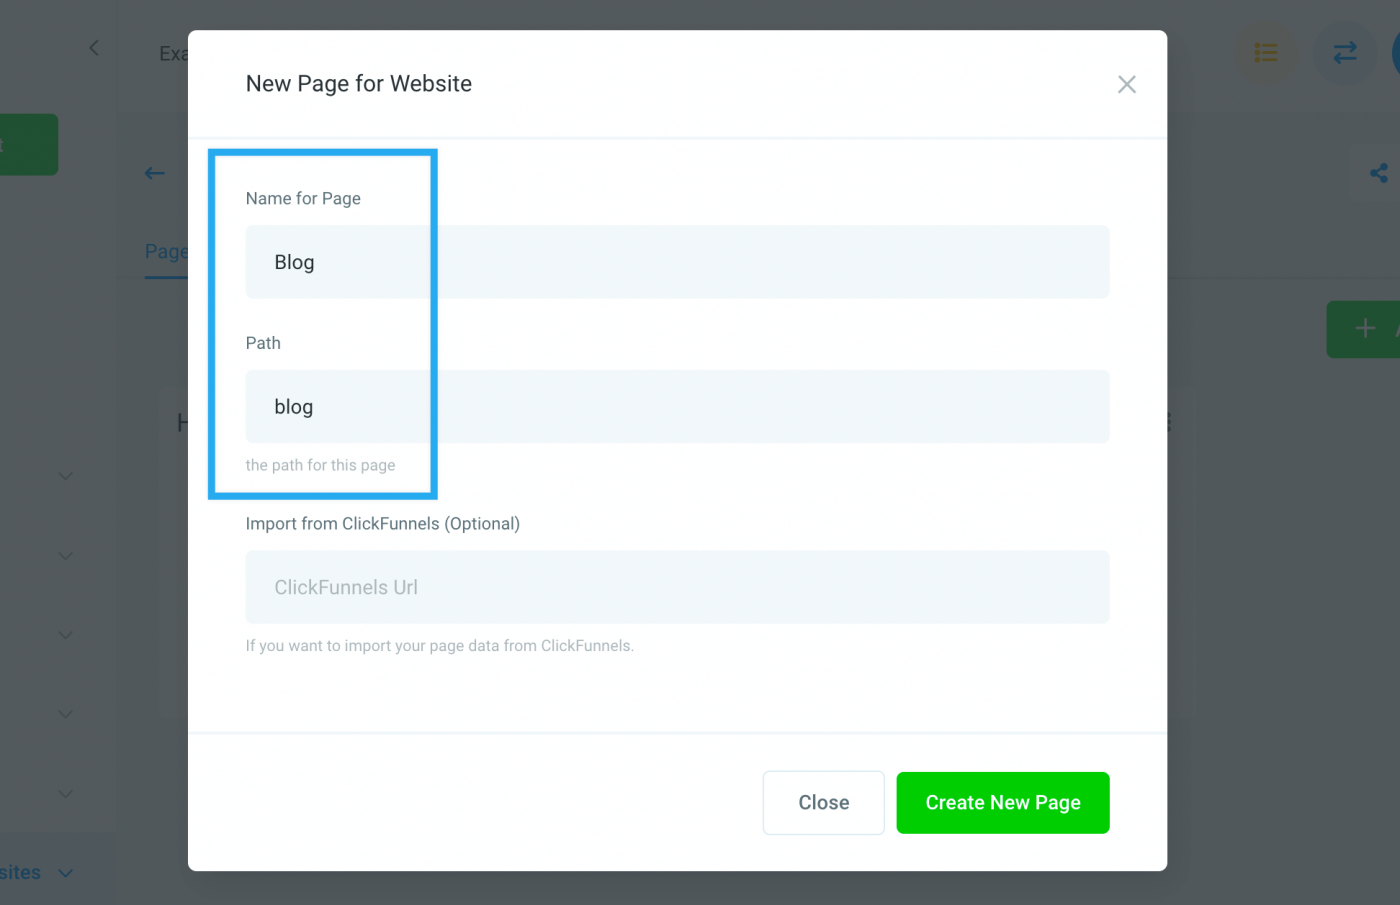 """New page dialog, with """"blog"""" as the page slug and """"Blog"""" as the page title"""